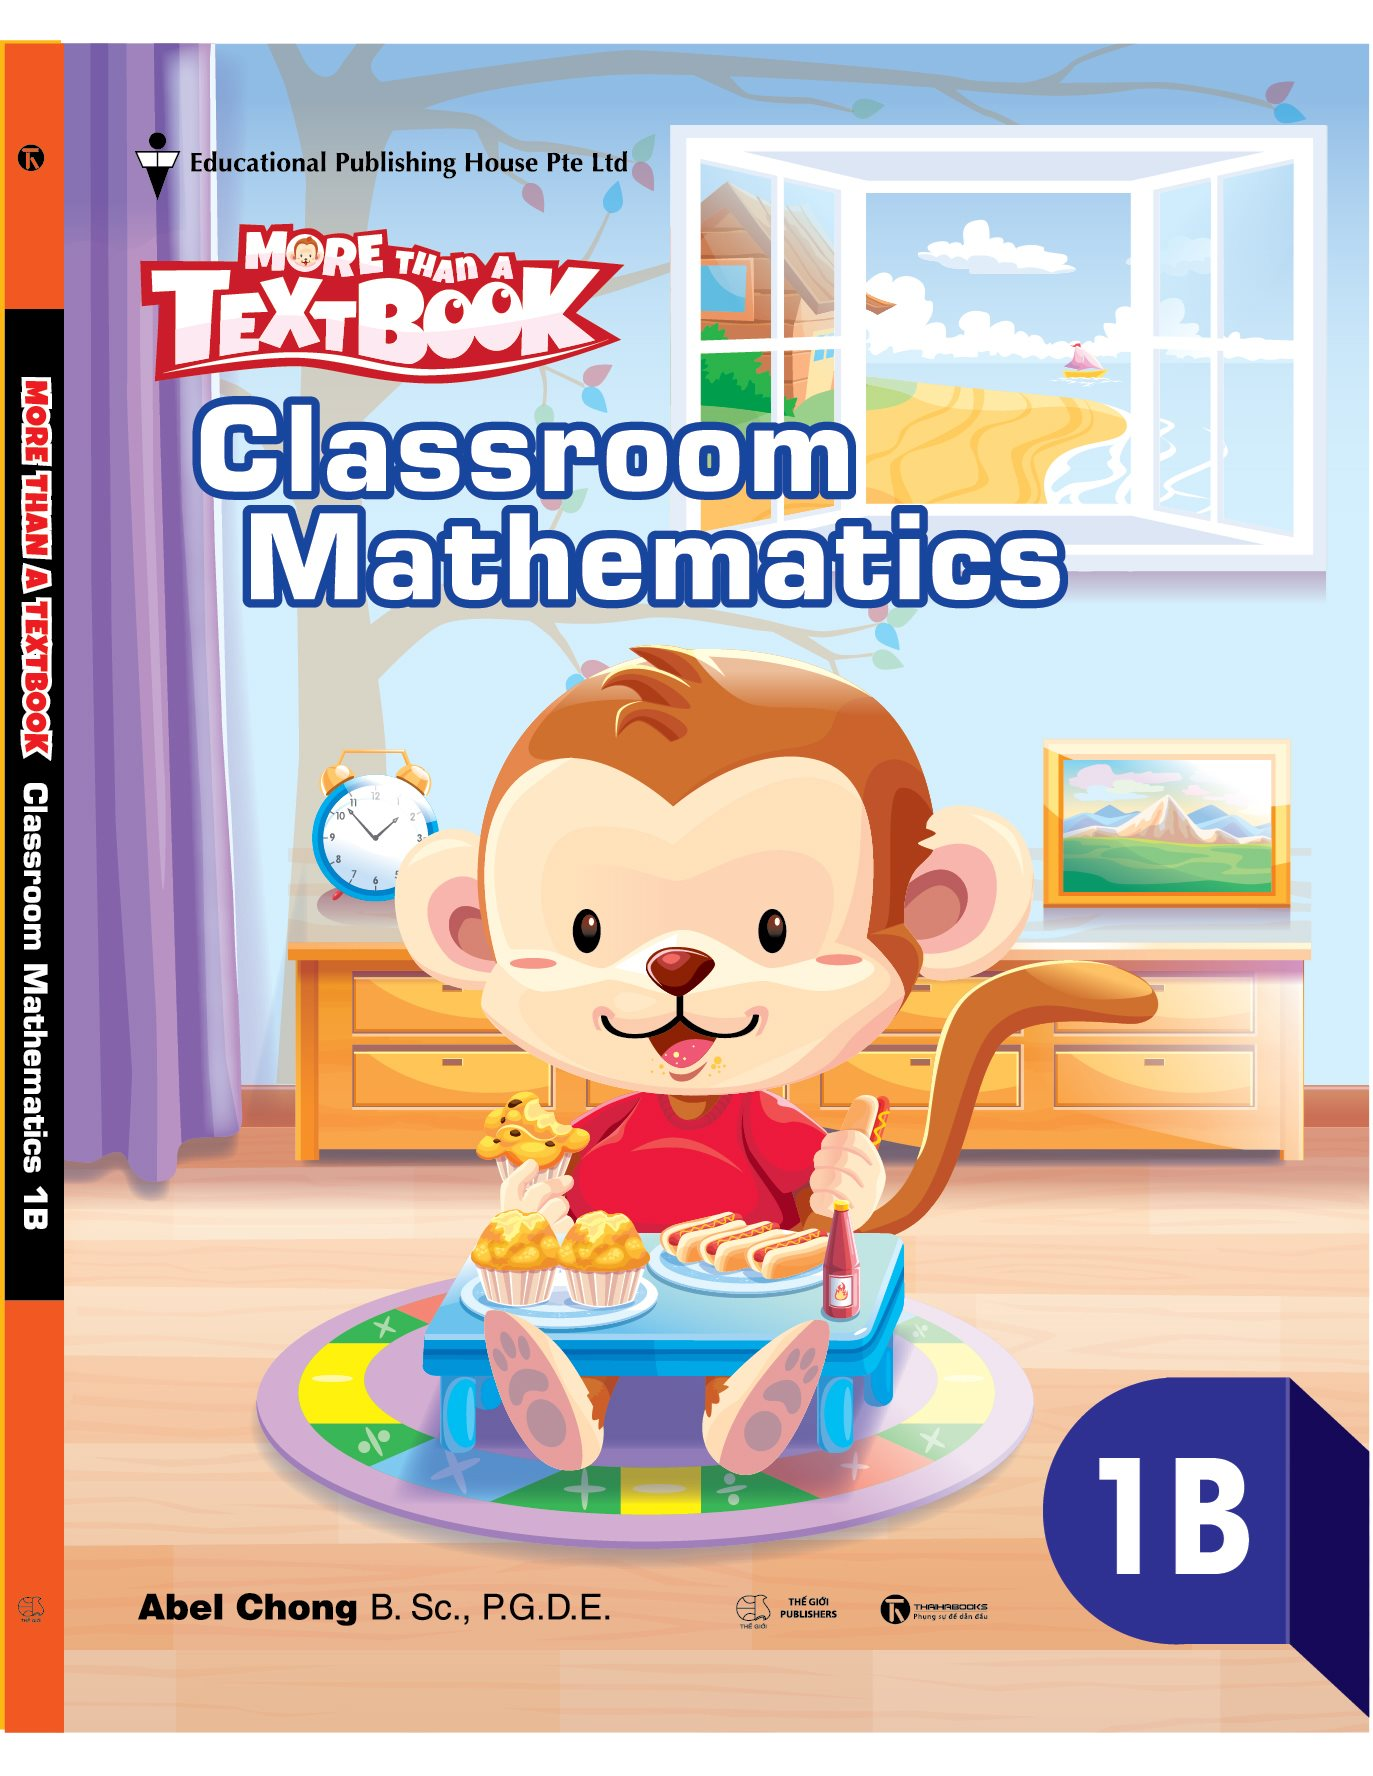 P1B More than a Textbook – Classroom Mathematics